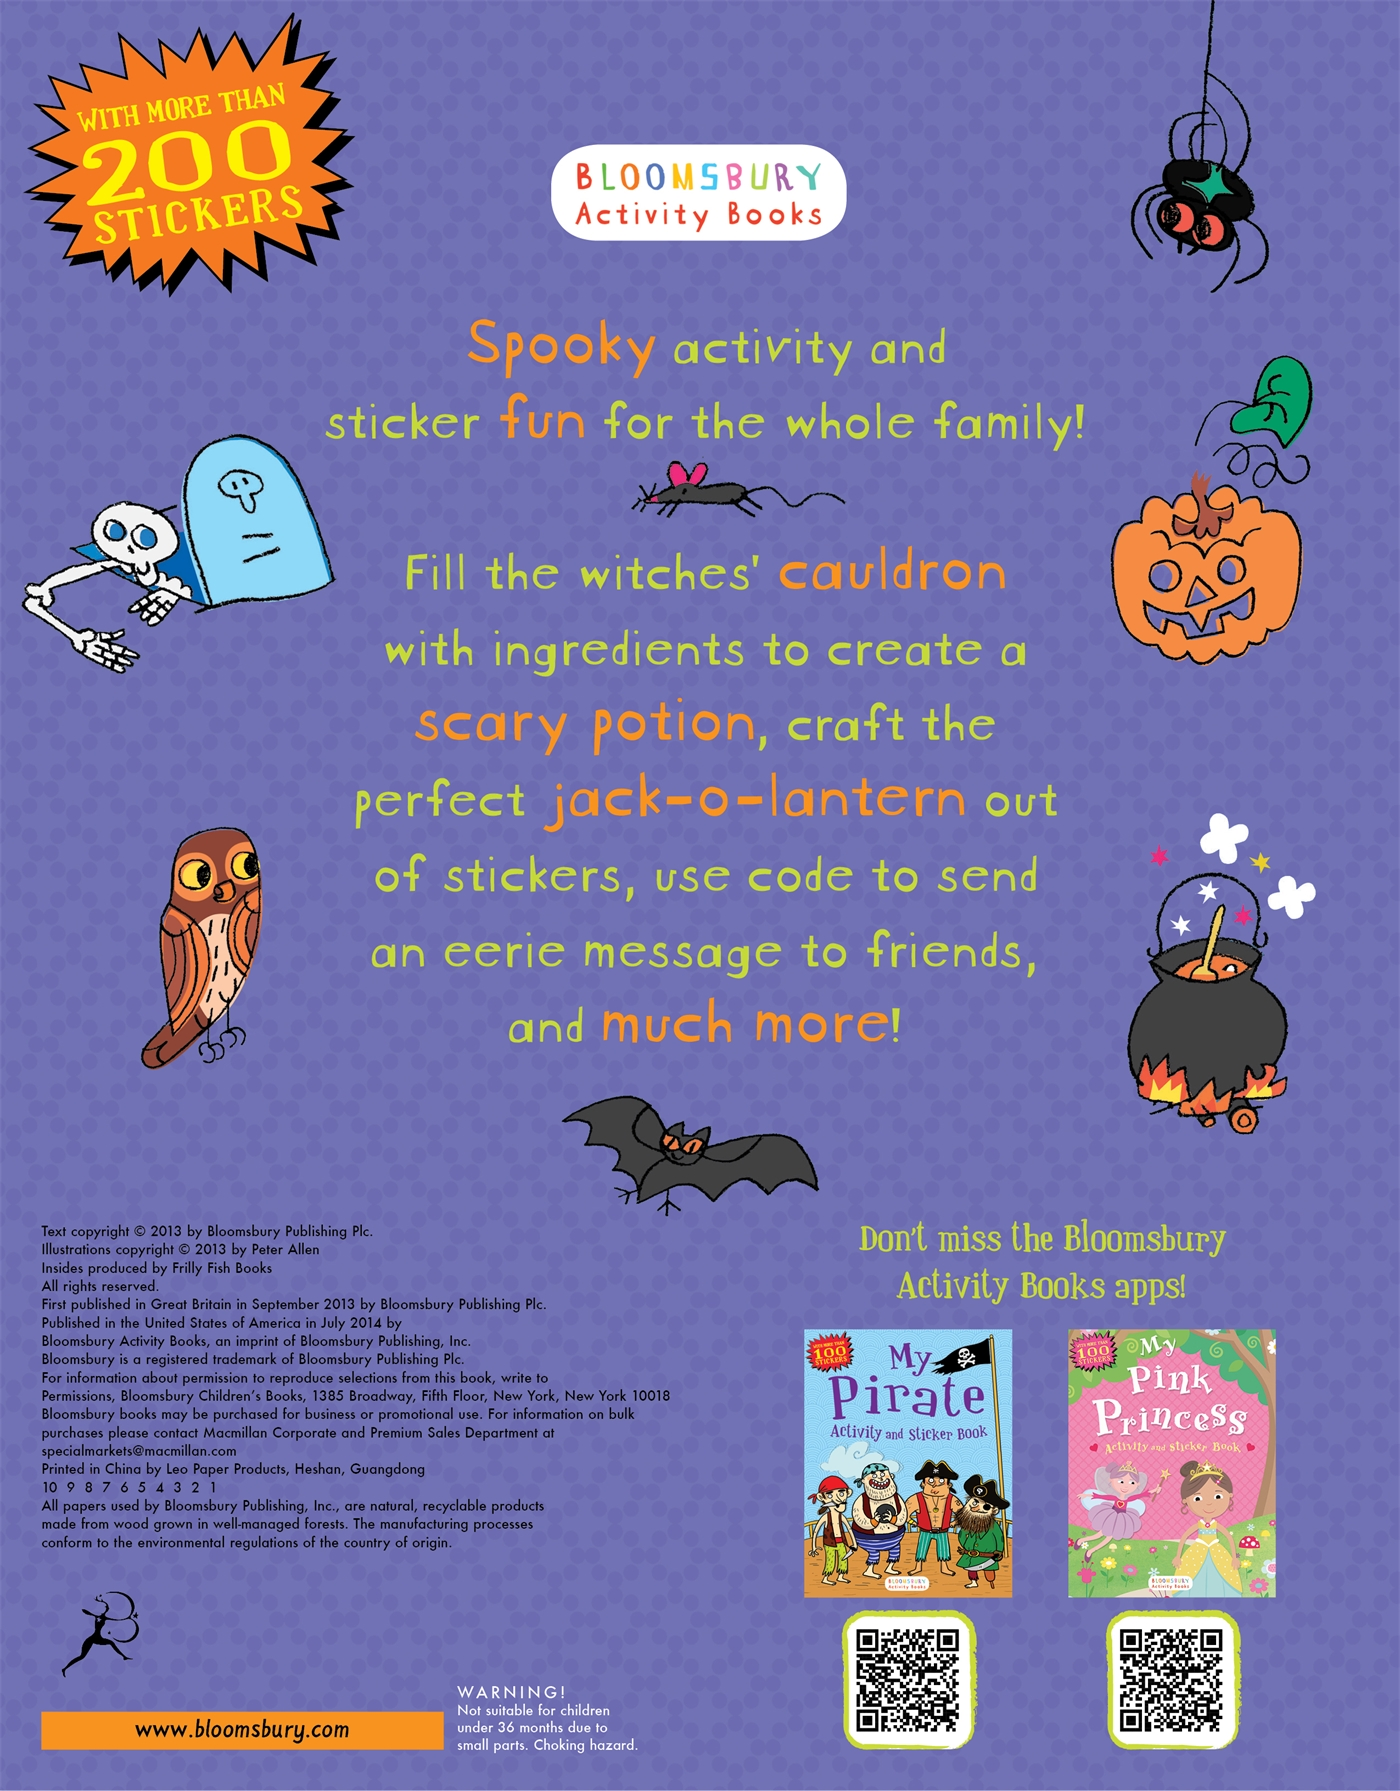 My Spooky Halloween Activity And Sticker Book Paperback Books Pretty Pink